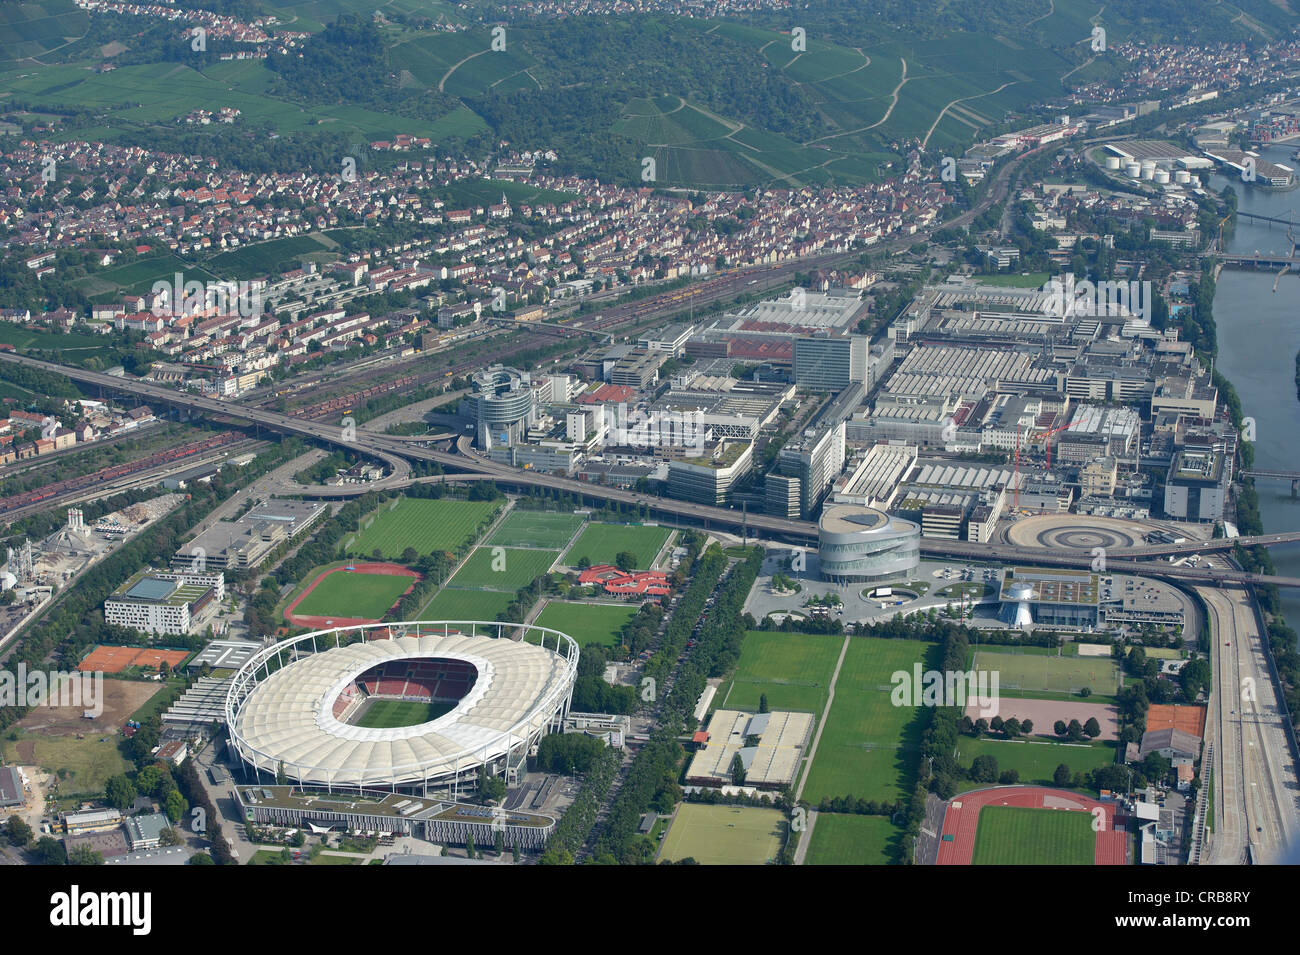 aerial view neckarpark vfb stuttgart football stadium stock photo 48806239 alamy. Black Bedroom Furniture Sets. Home Design Ideas